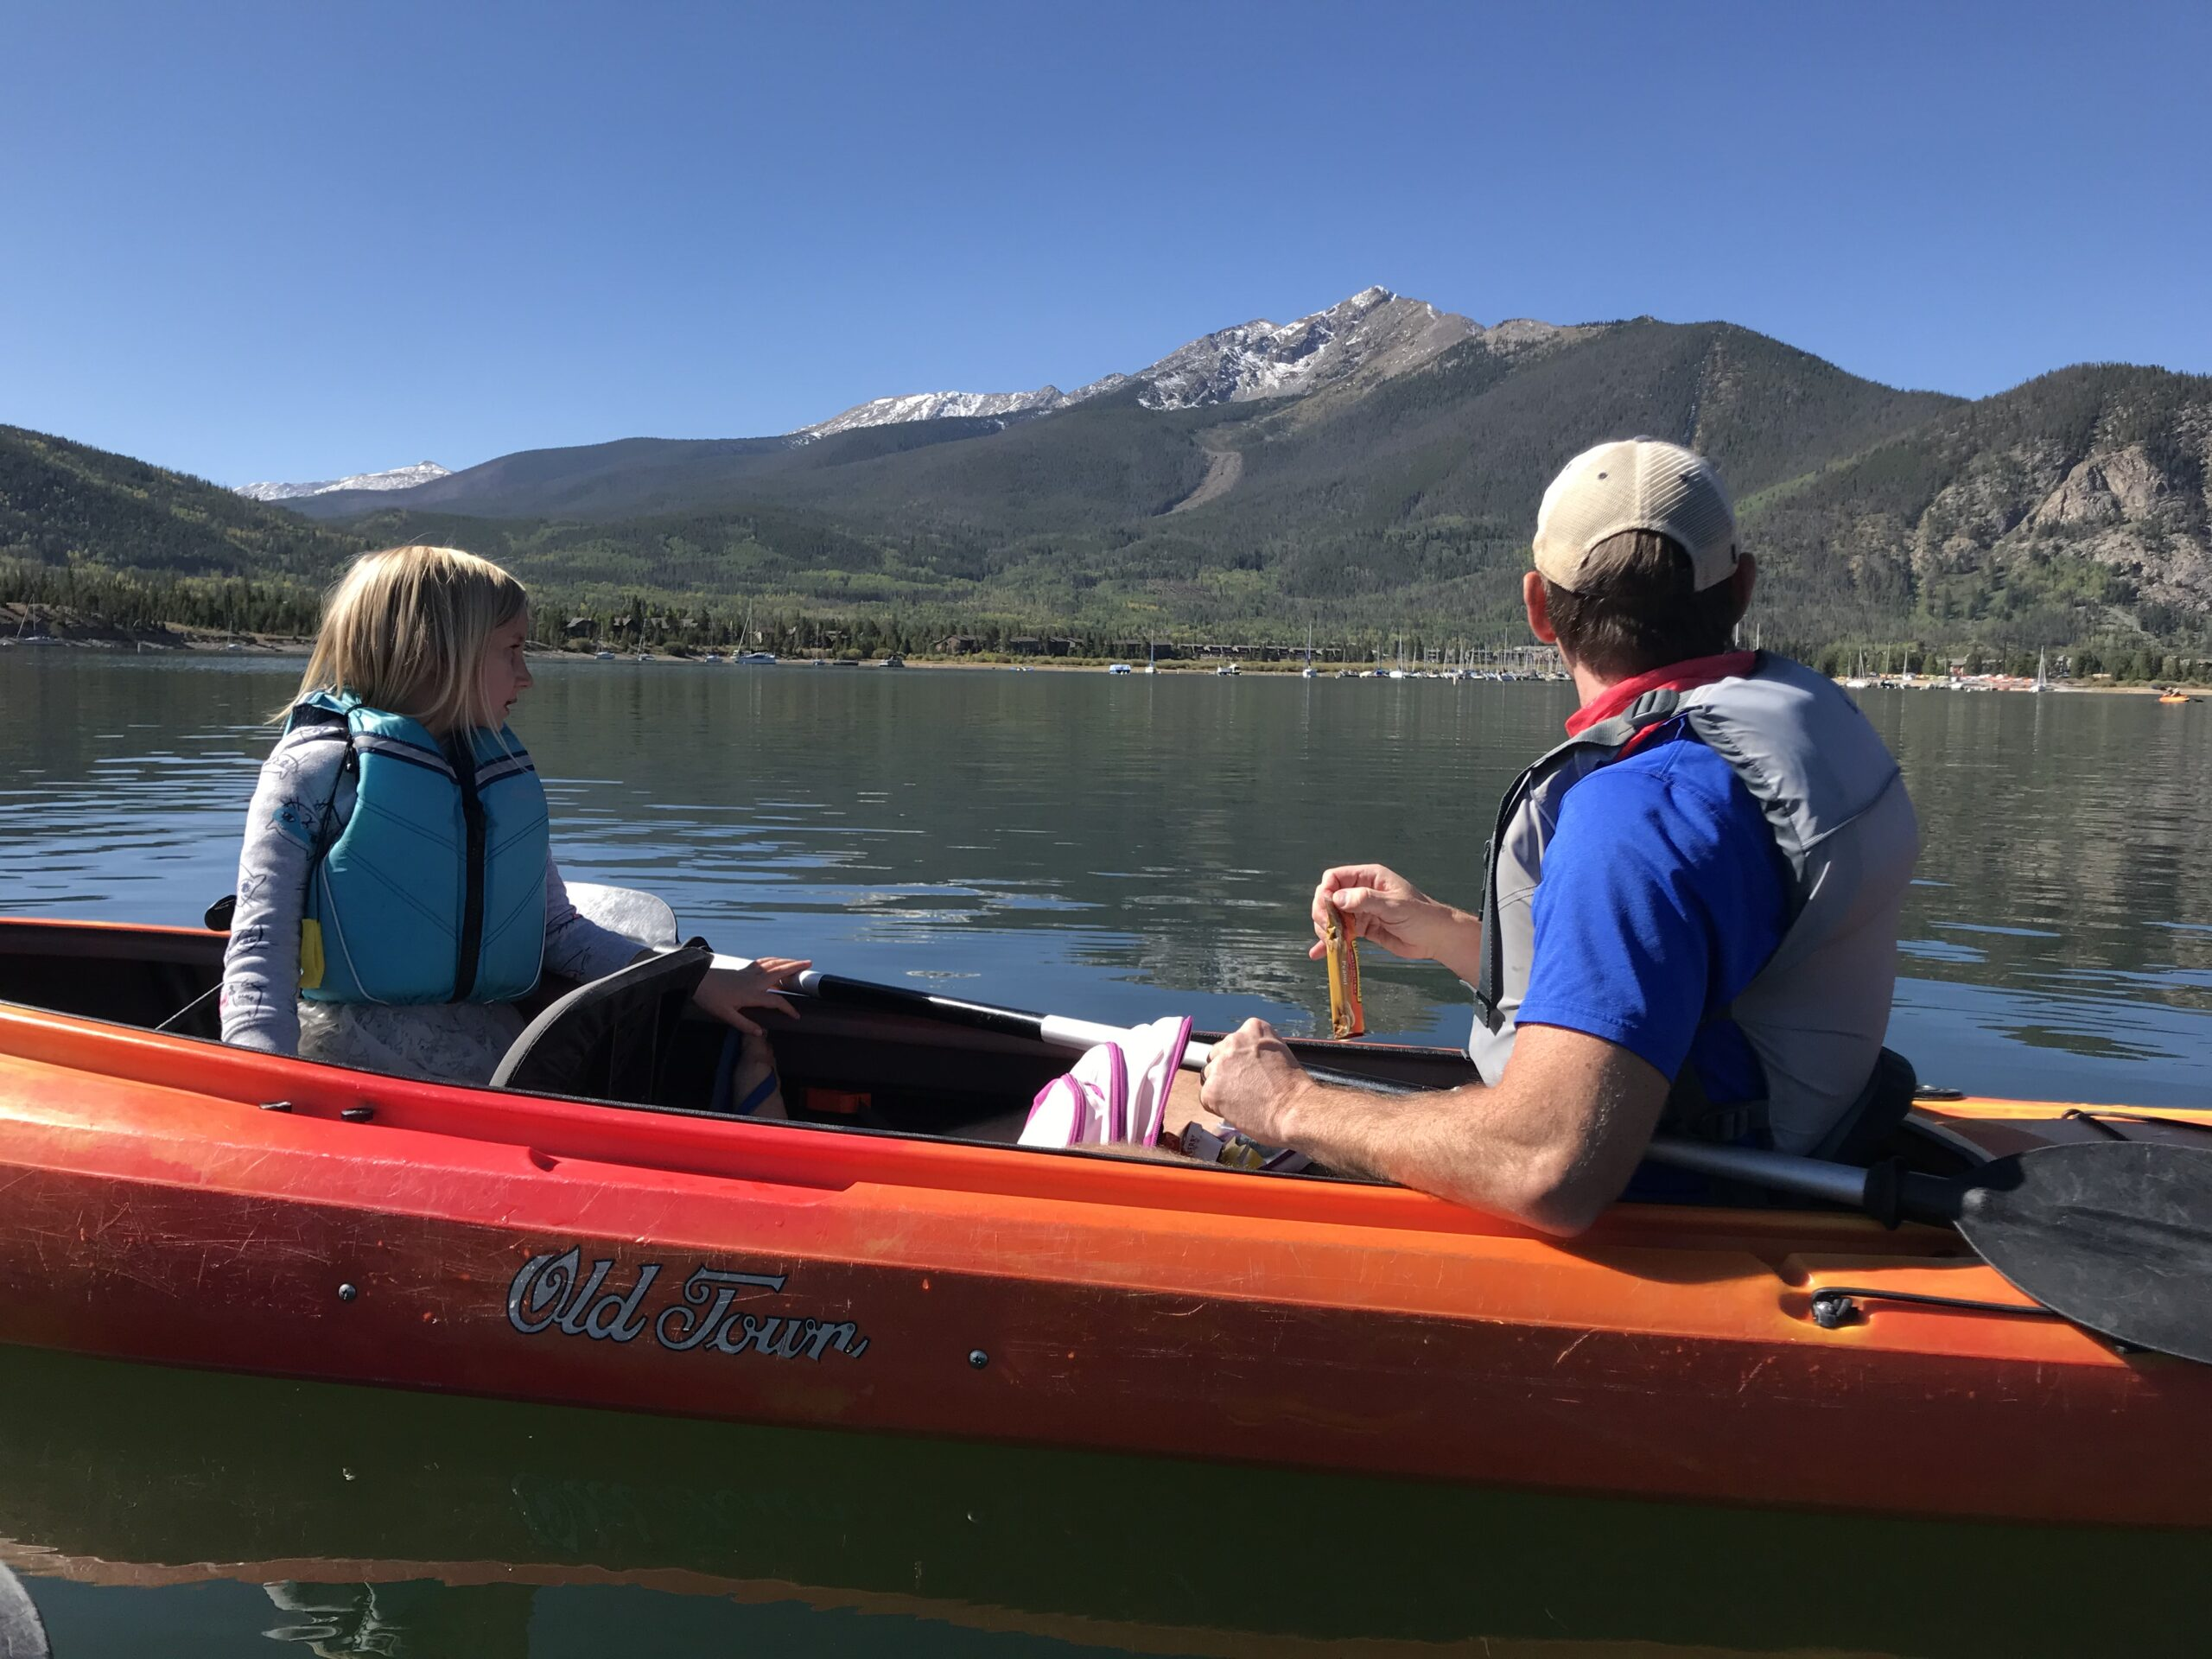 Dad and daughter kayaking on Lake Dillon, one of the best things to do in Frisco CO in the summer.